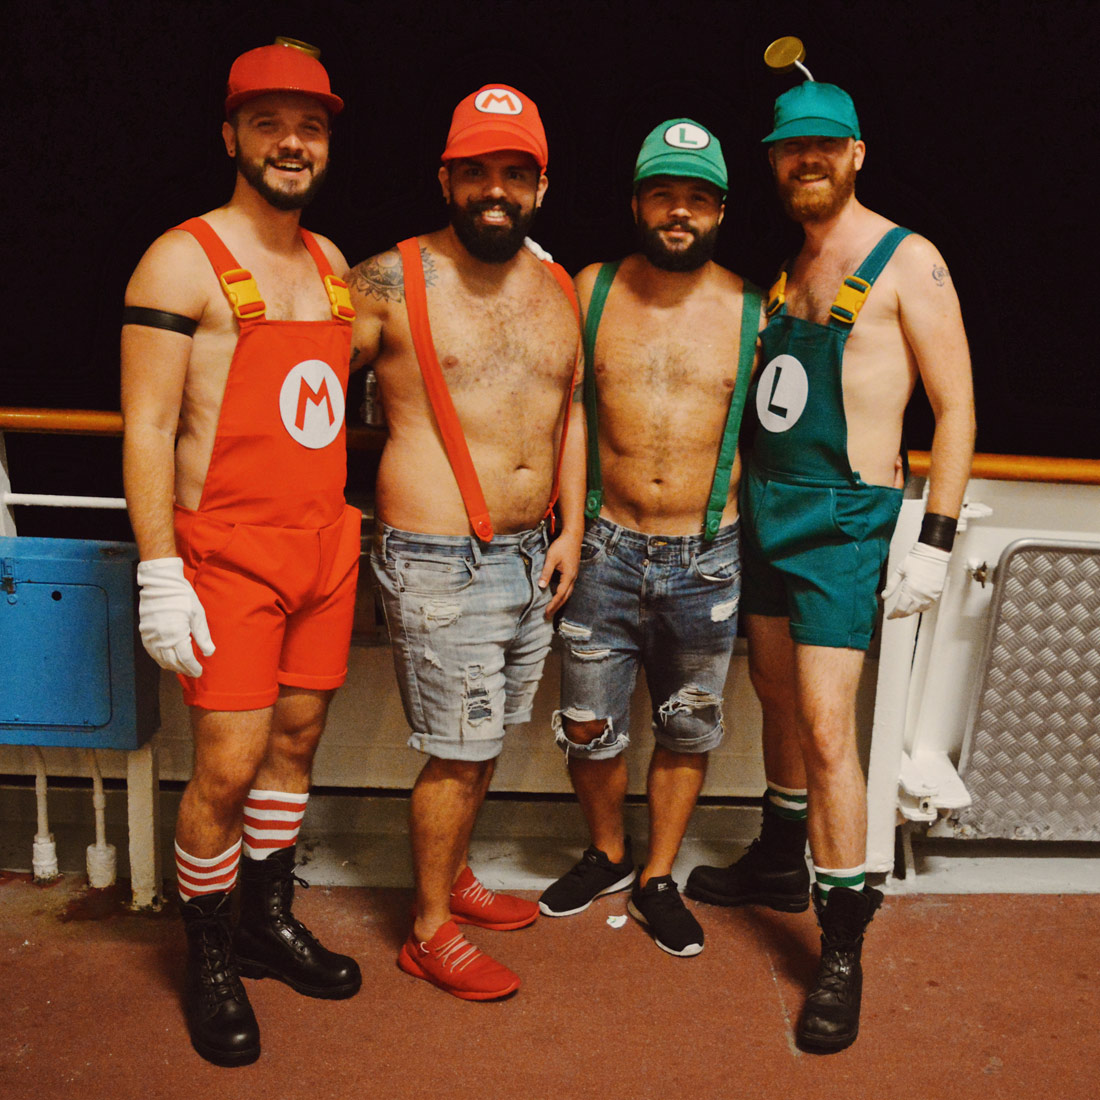 Making new friends from Costa Rica: Super Mario Brothers! © CoupleofMen.com